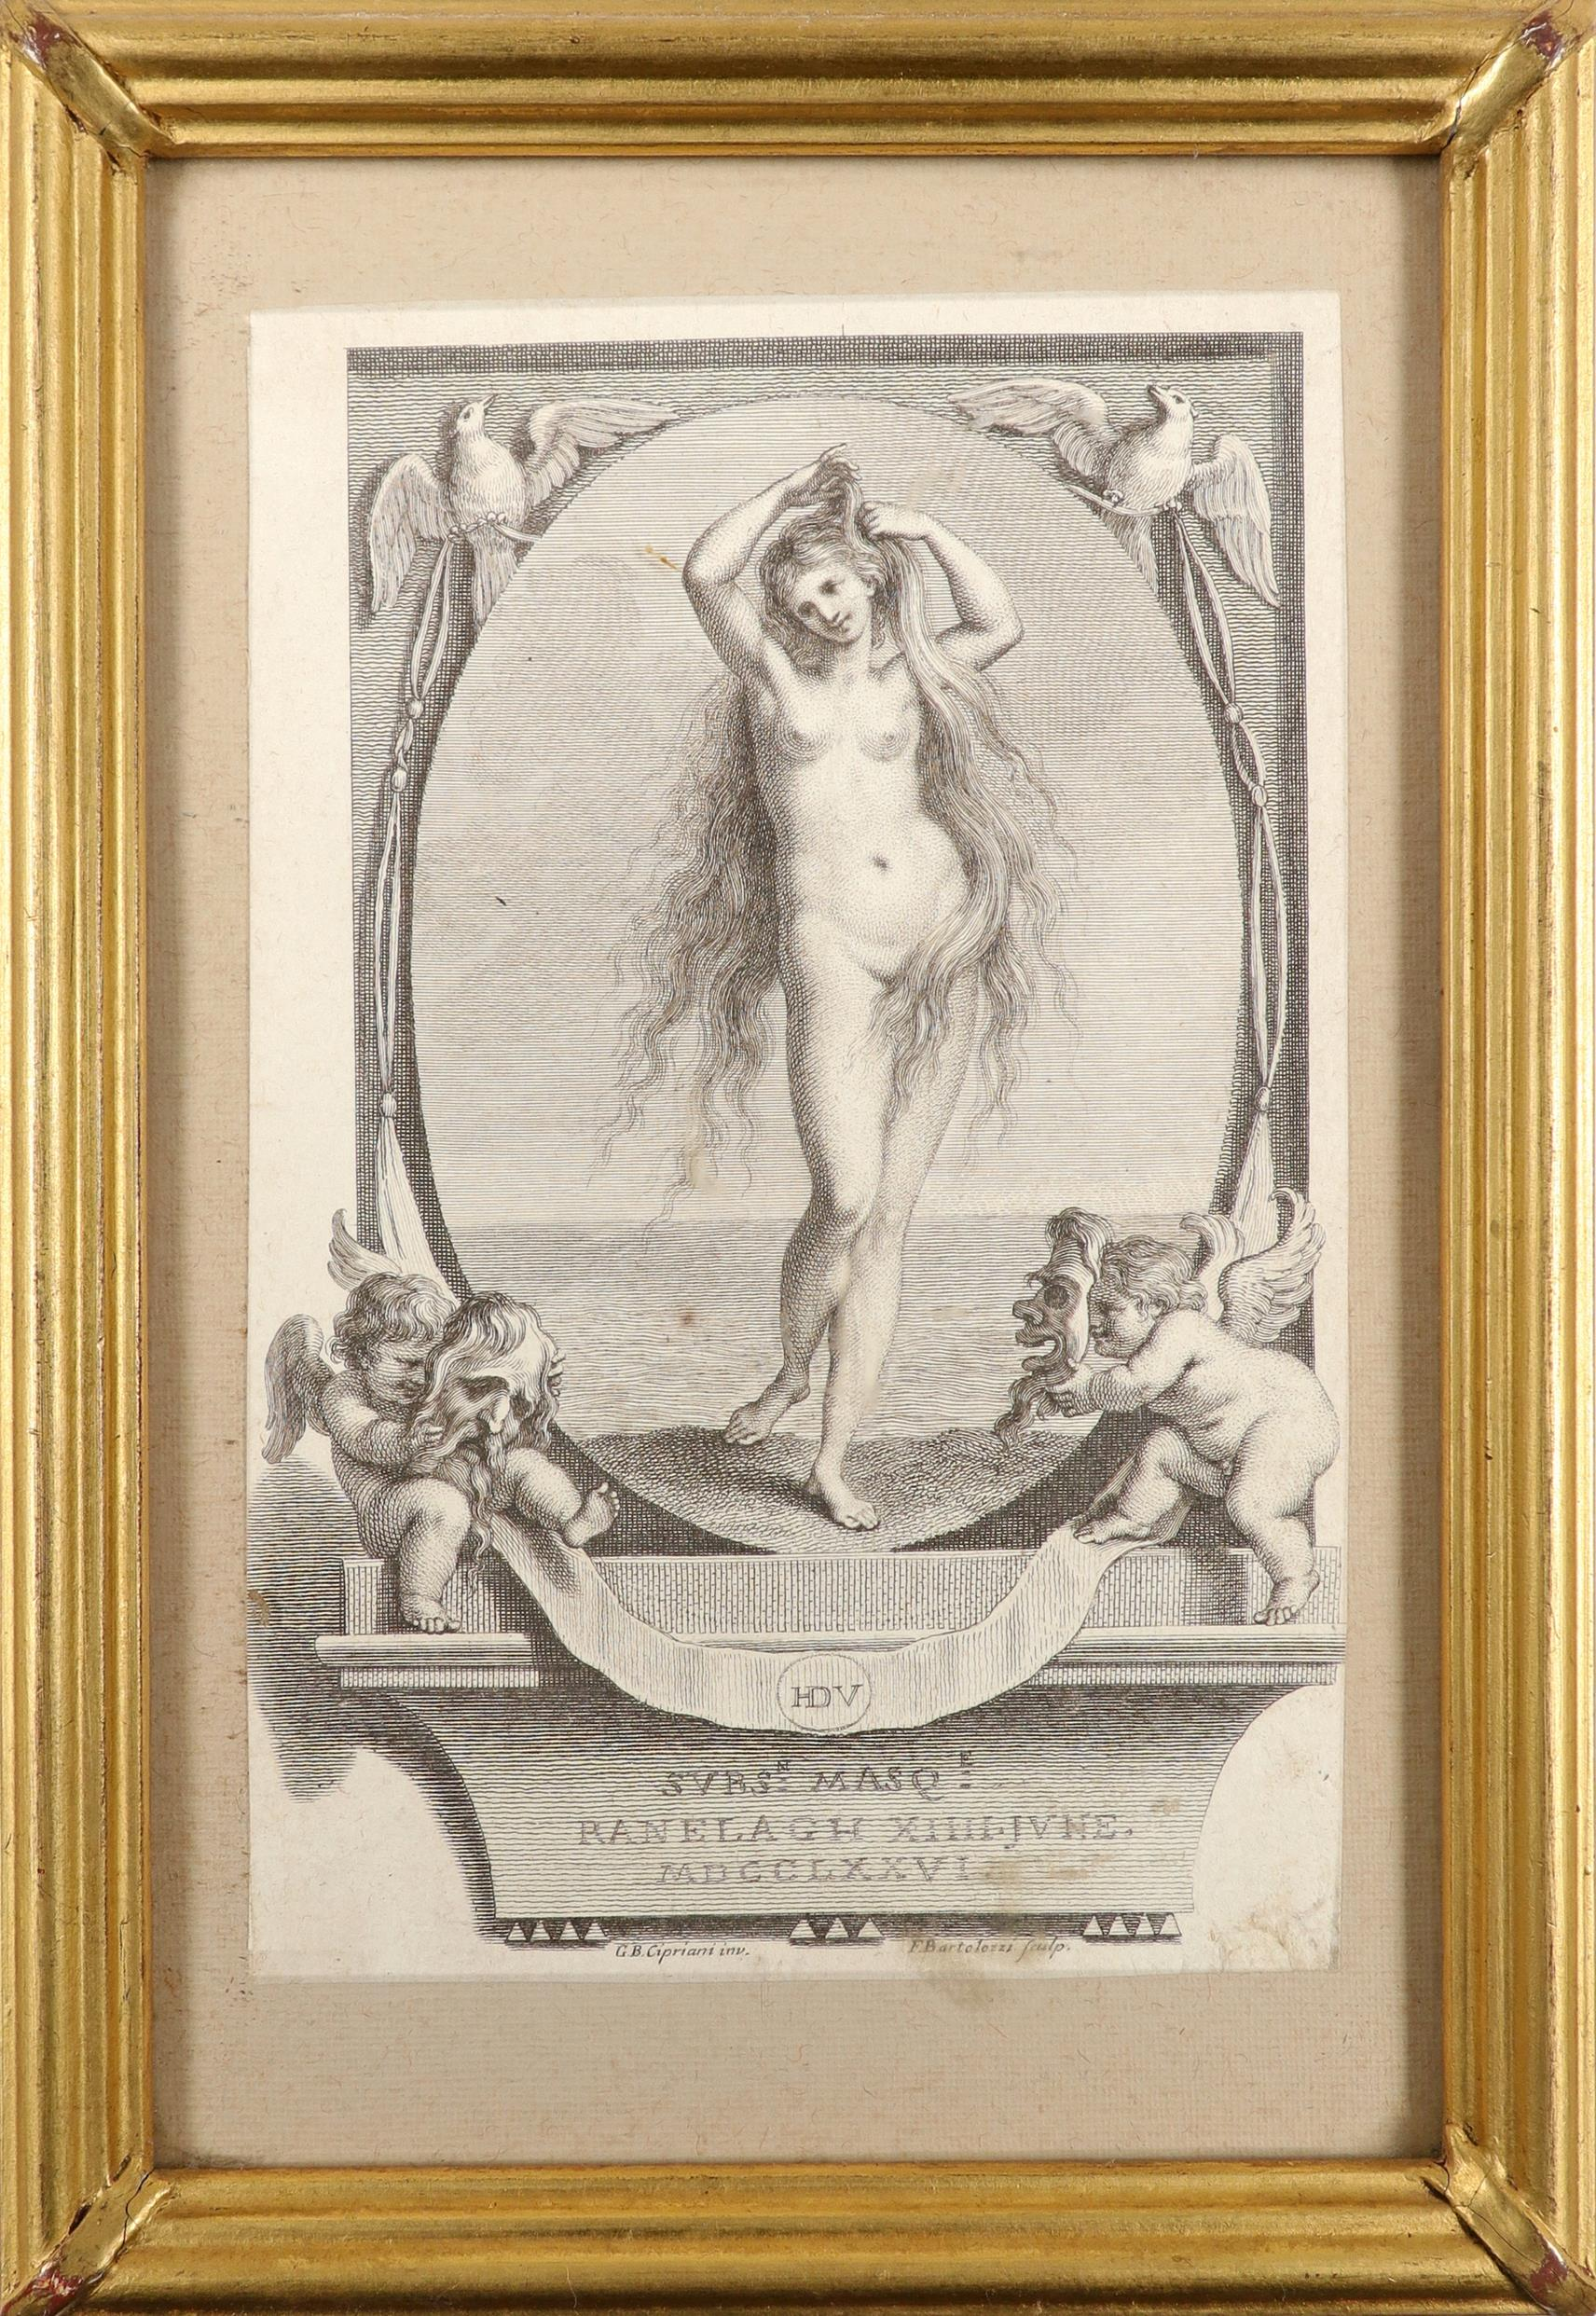 English School 1754 The Charming Brute: A Satire on Handel Etching 33.2 x 23.5cm; 13 x 9¼in ( - Image 11 of 18